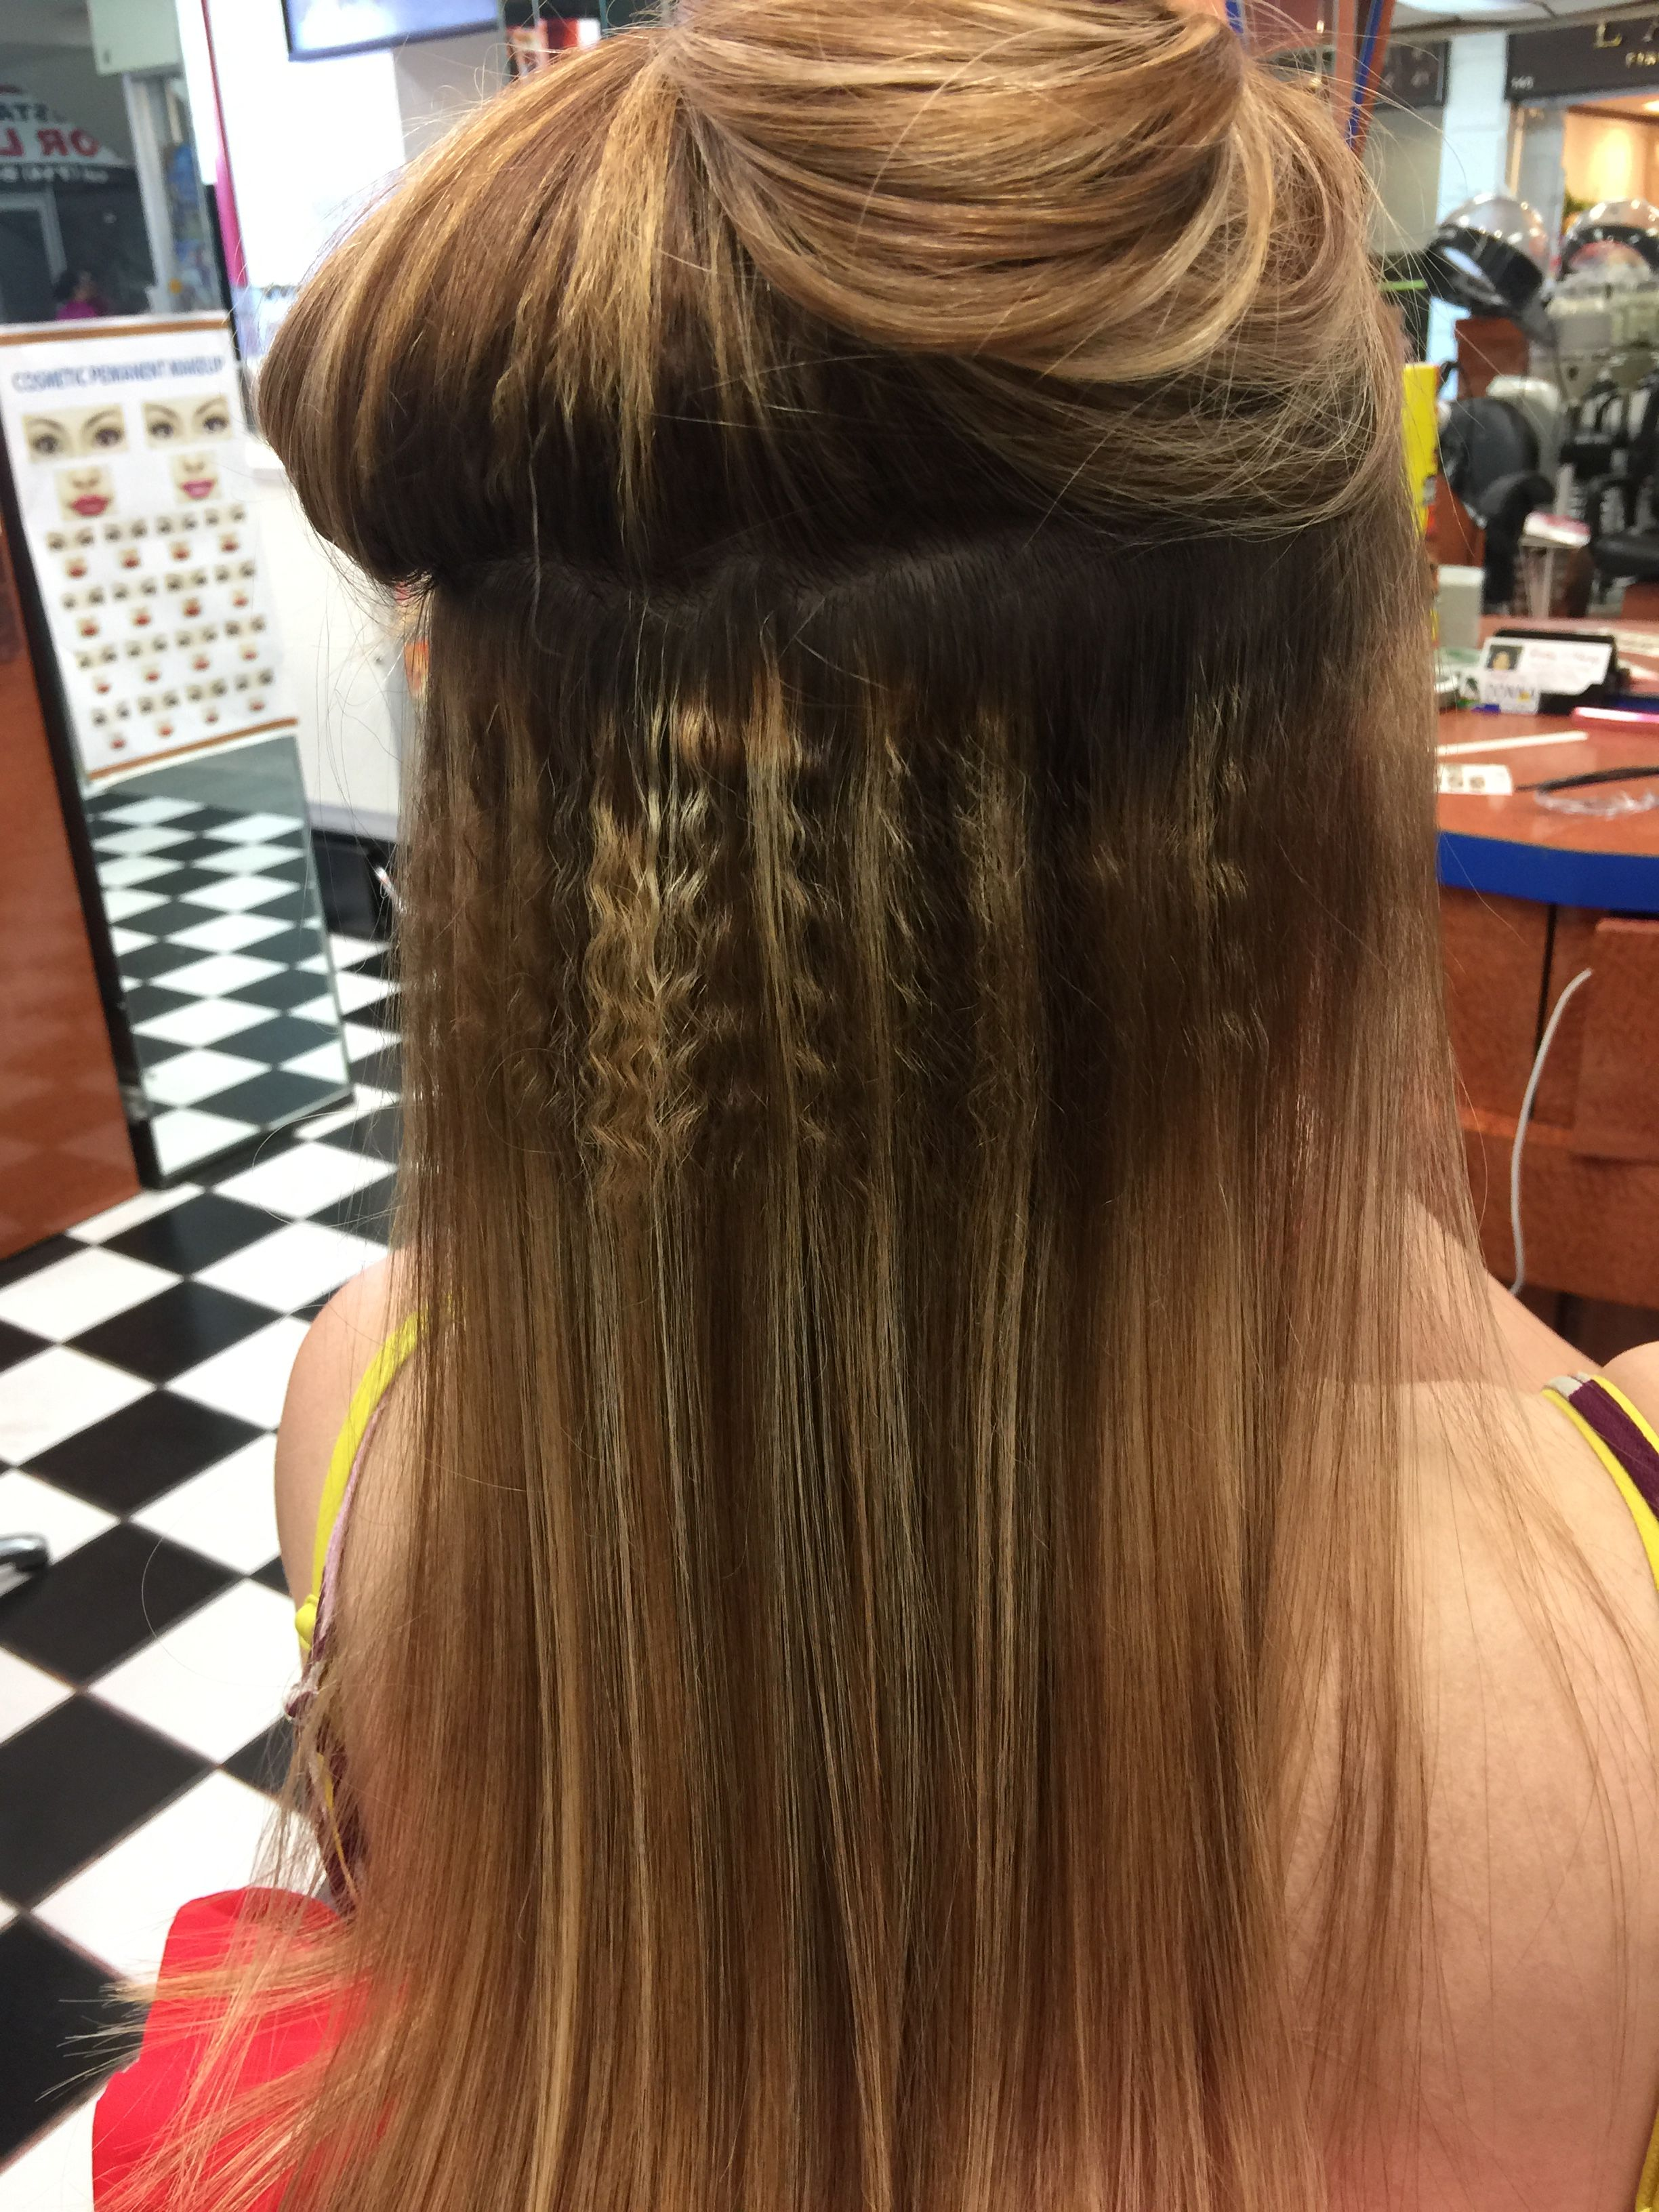 Roots Permanent Make Your Thin Hair Look Thicker And More Volume 7142249765 Hairstyles For Thin Hair Hair Looks Hair Styles